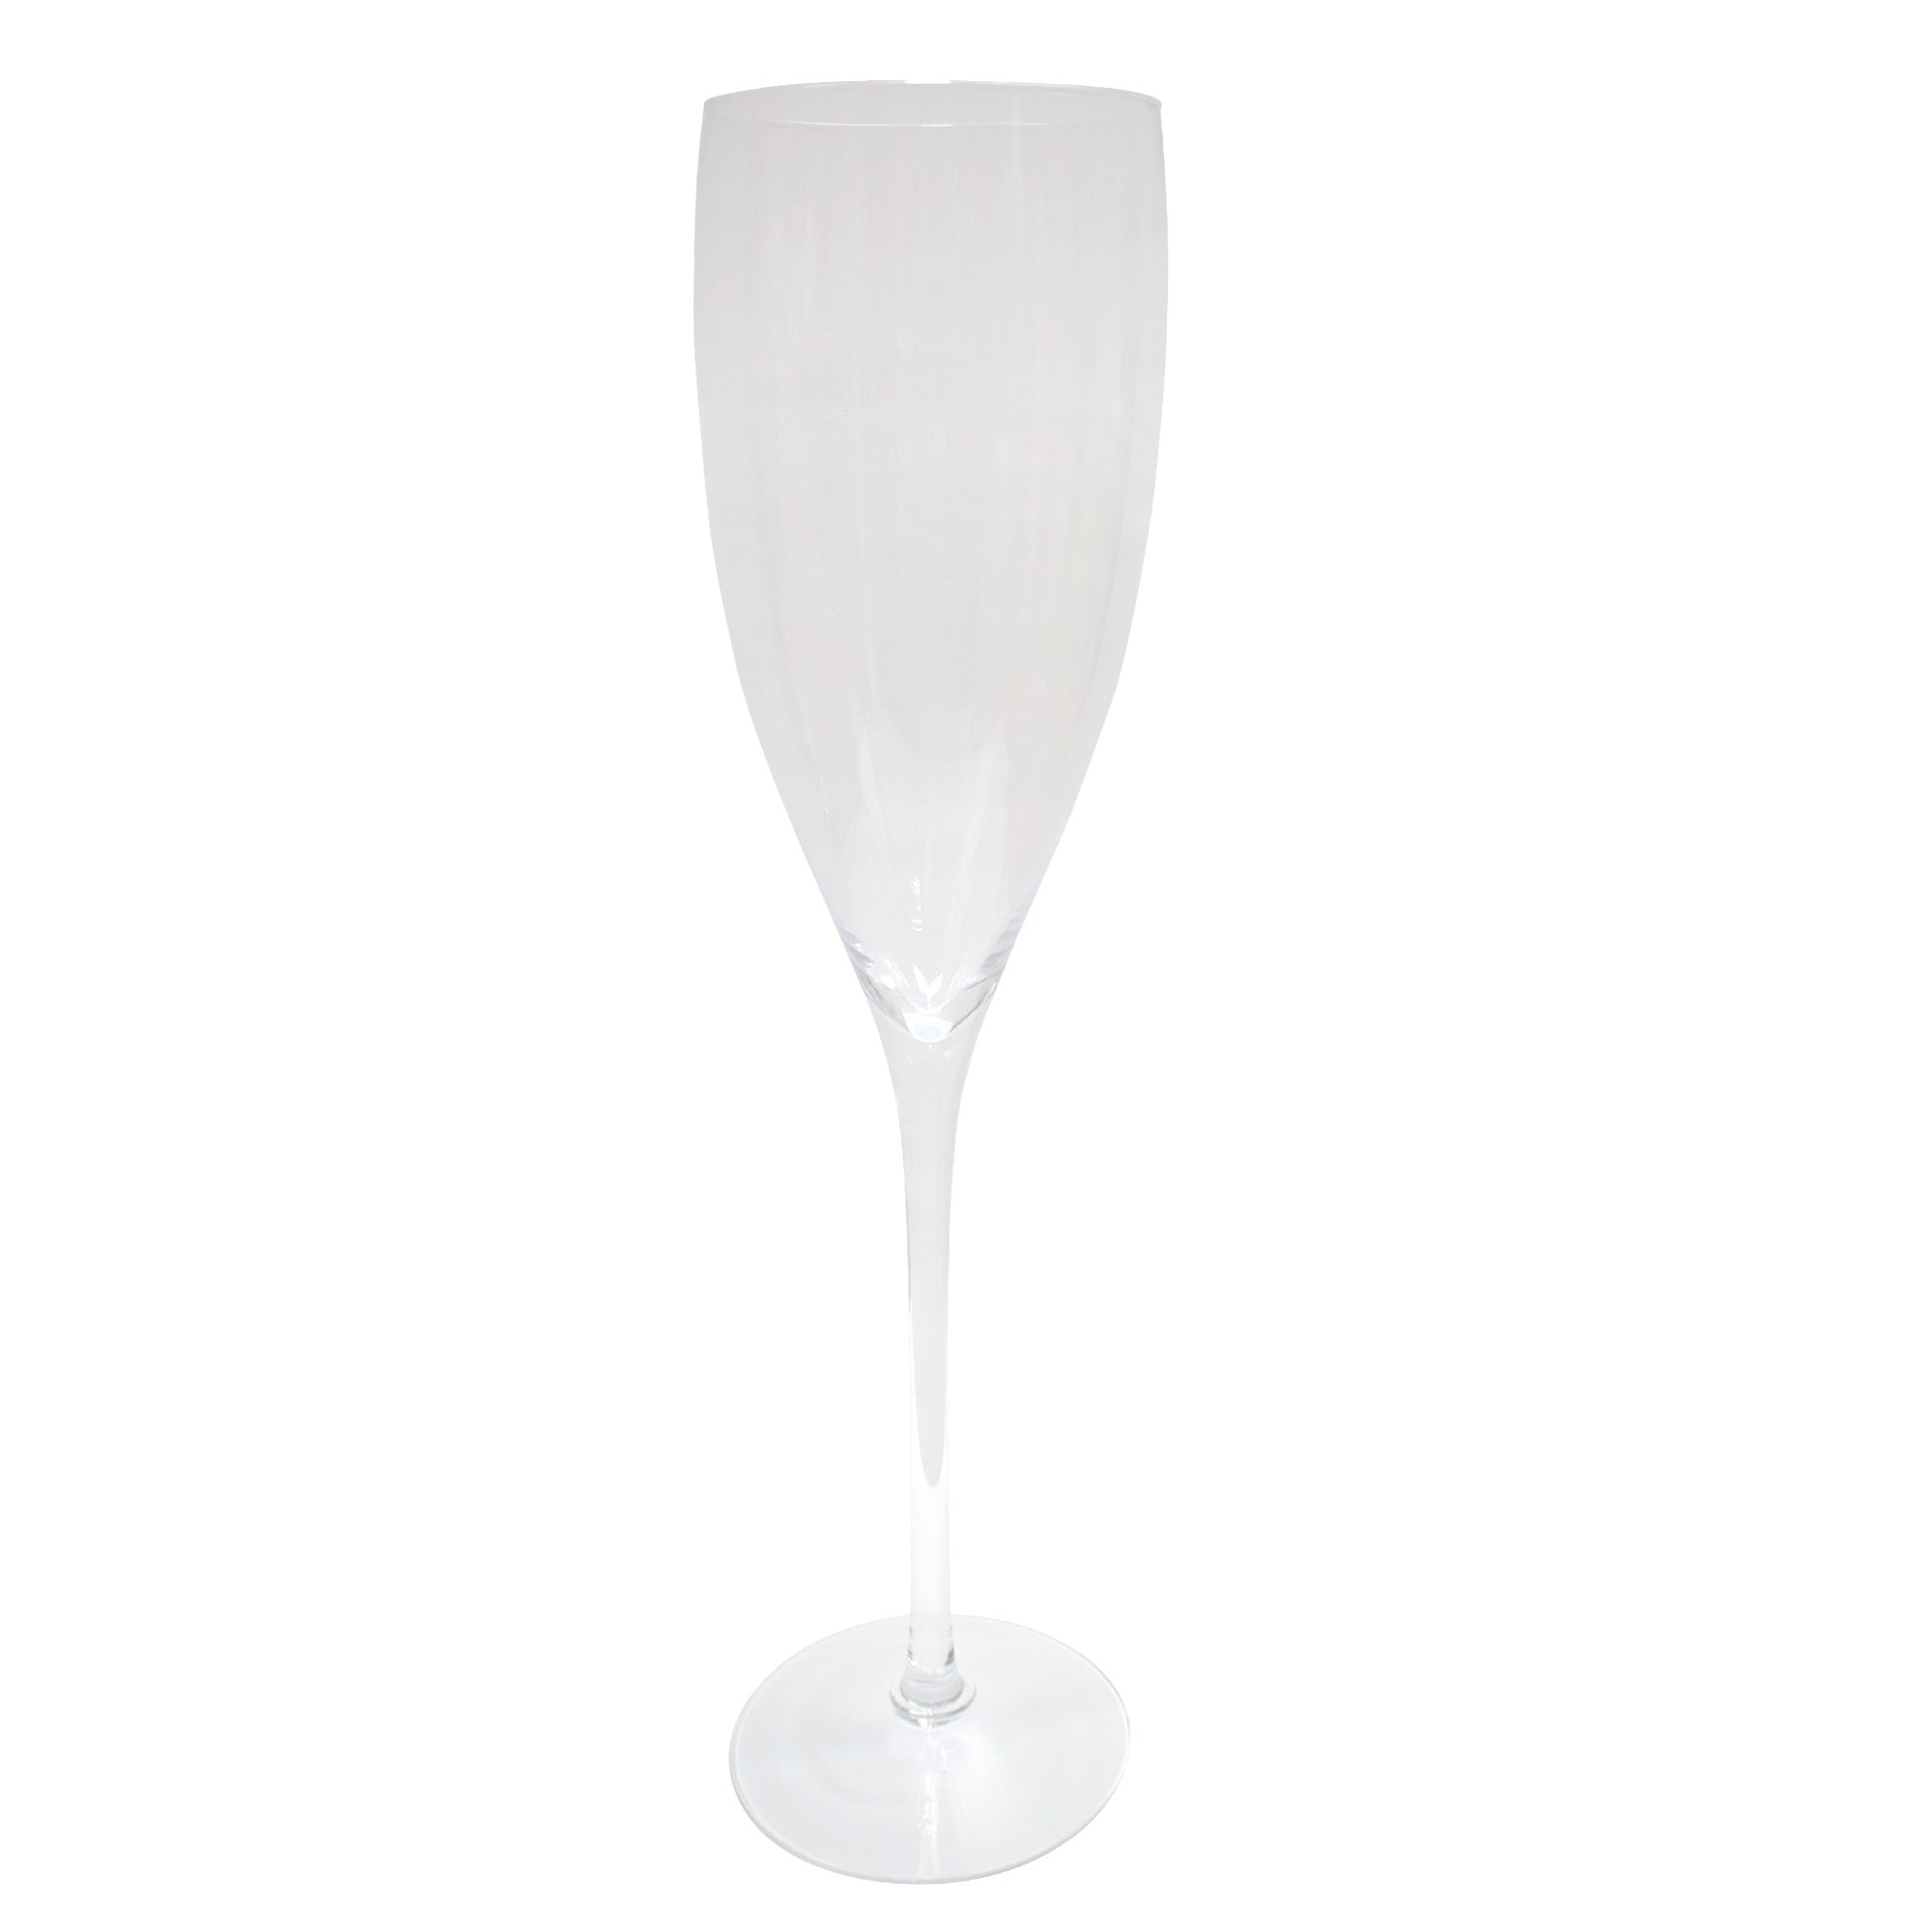 Photo of Champagne flute vase clear